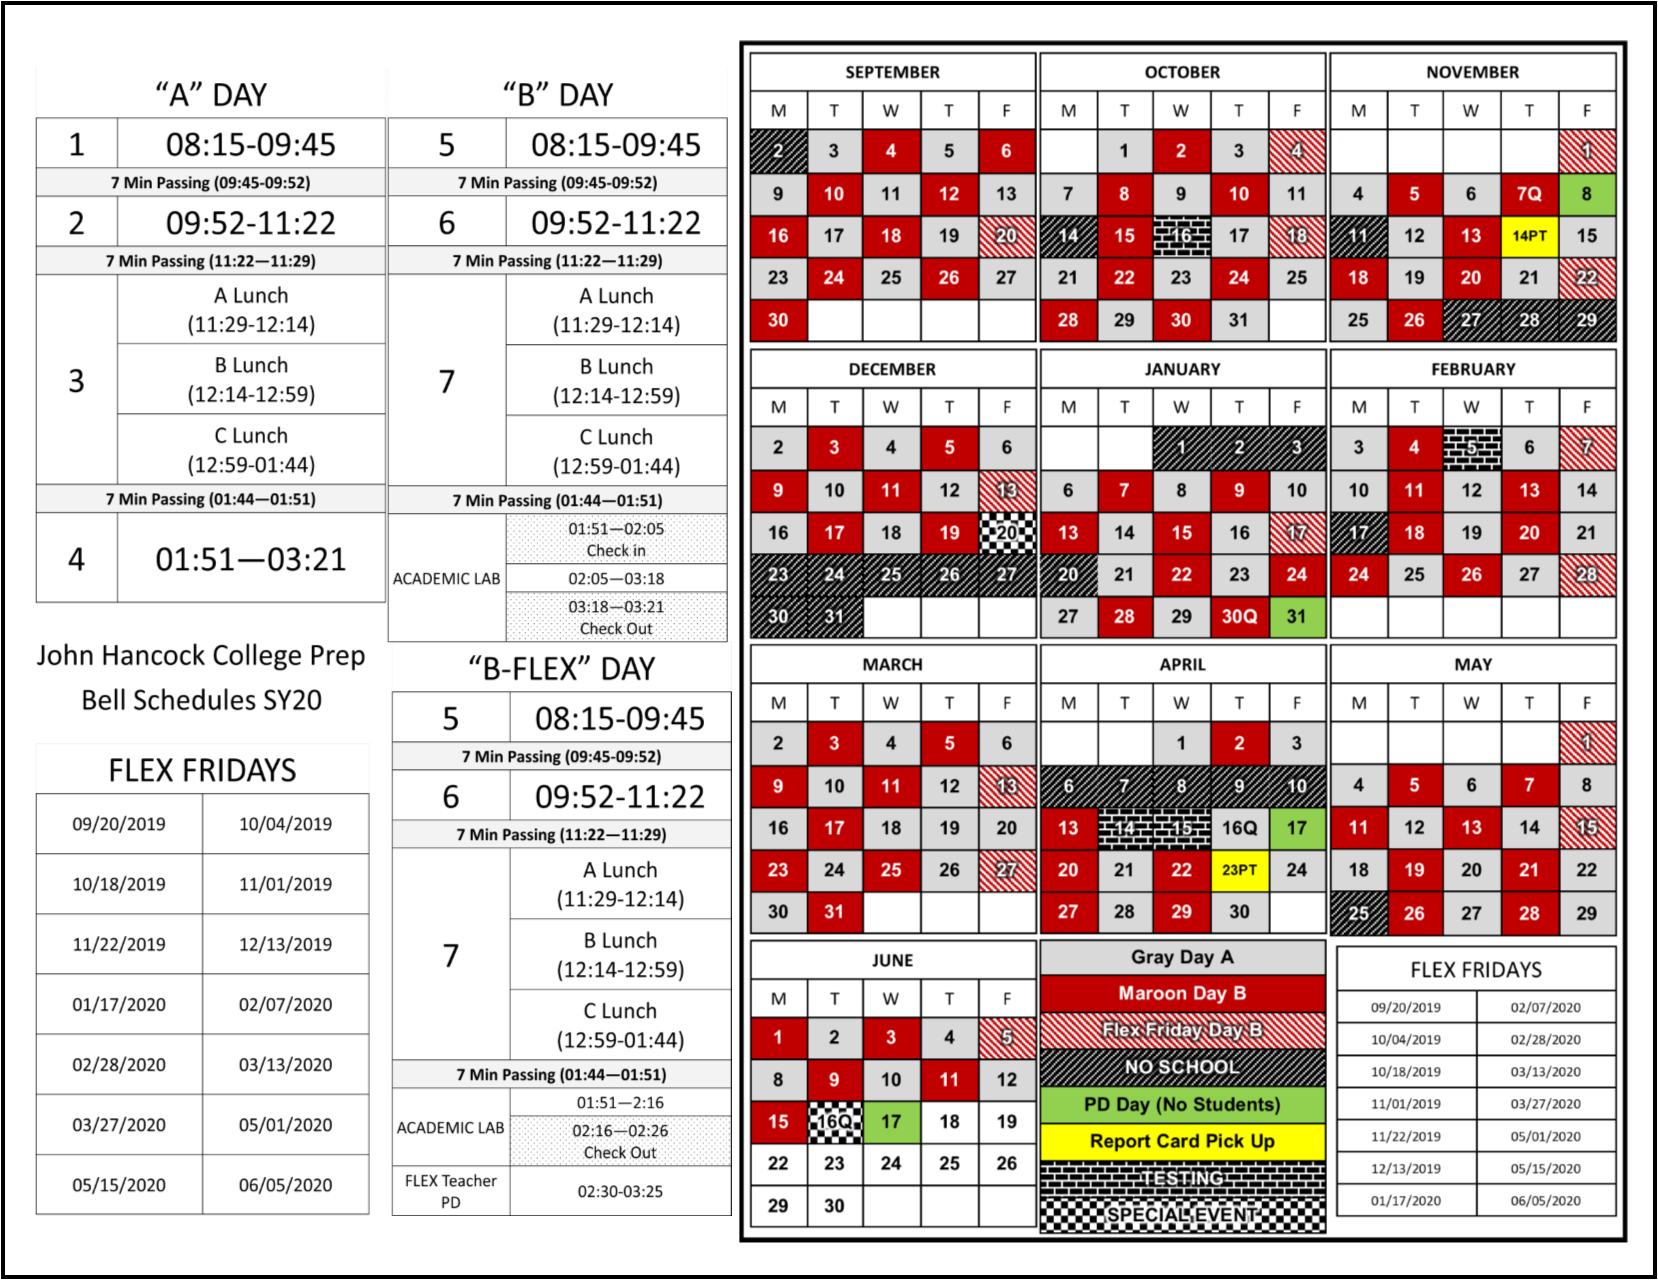 This is the 2019 2020 Hancock Bell Schedule indicating which days are A, B, or B Flex.